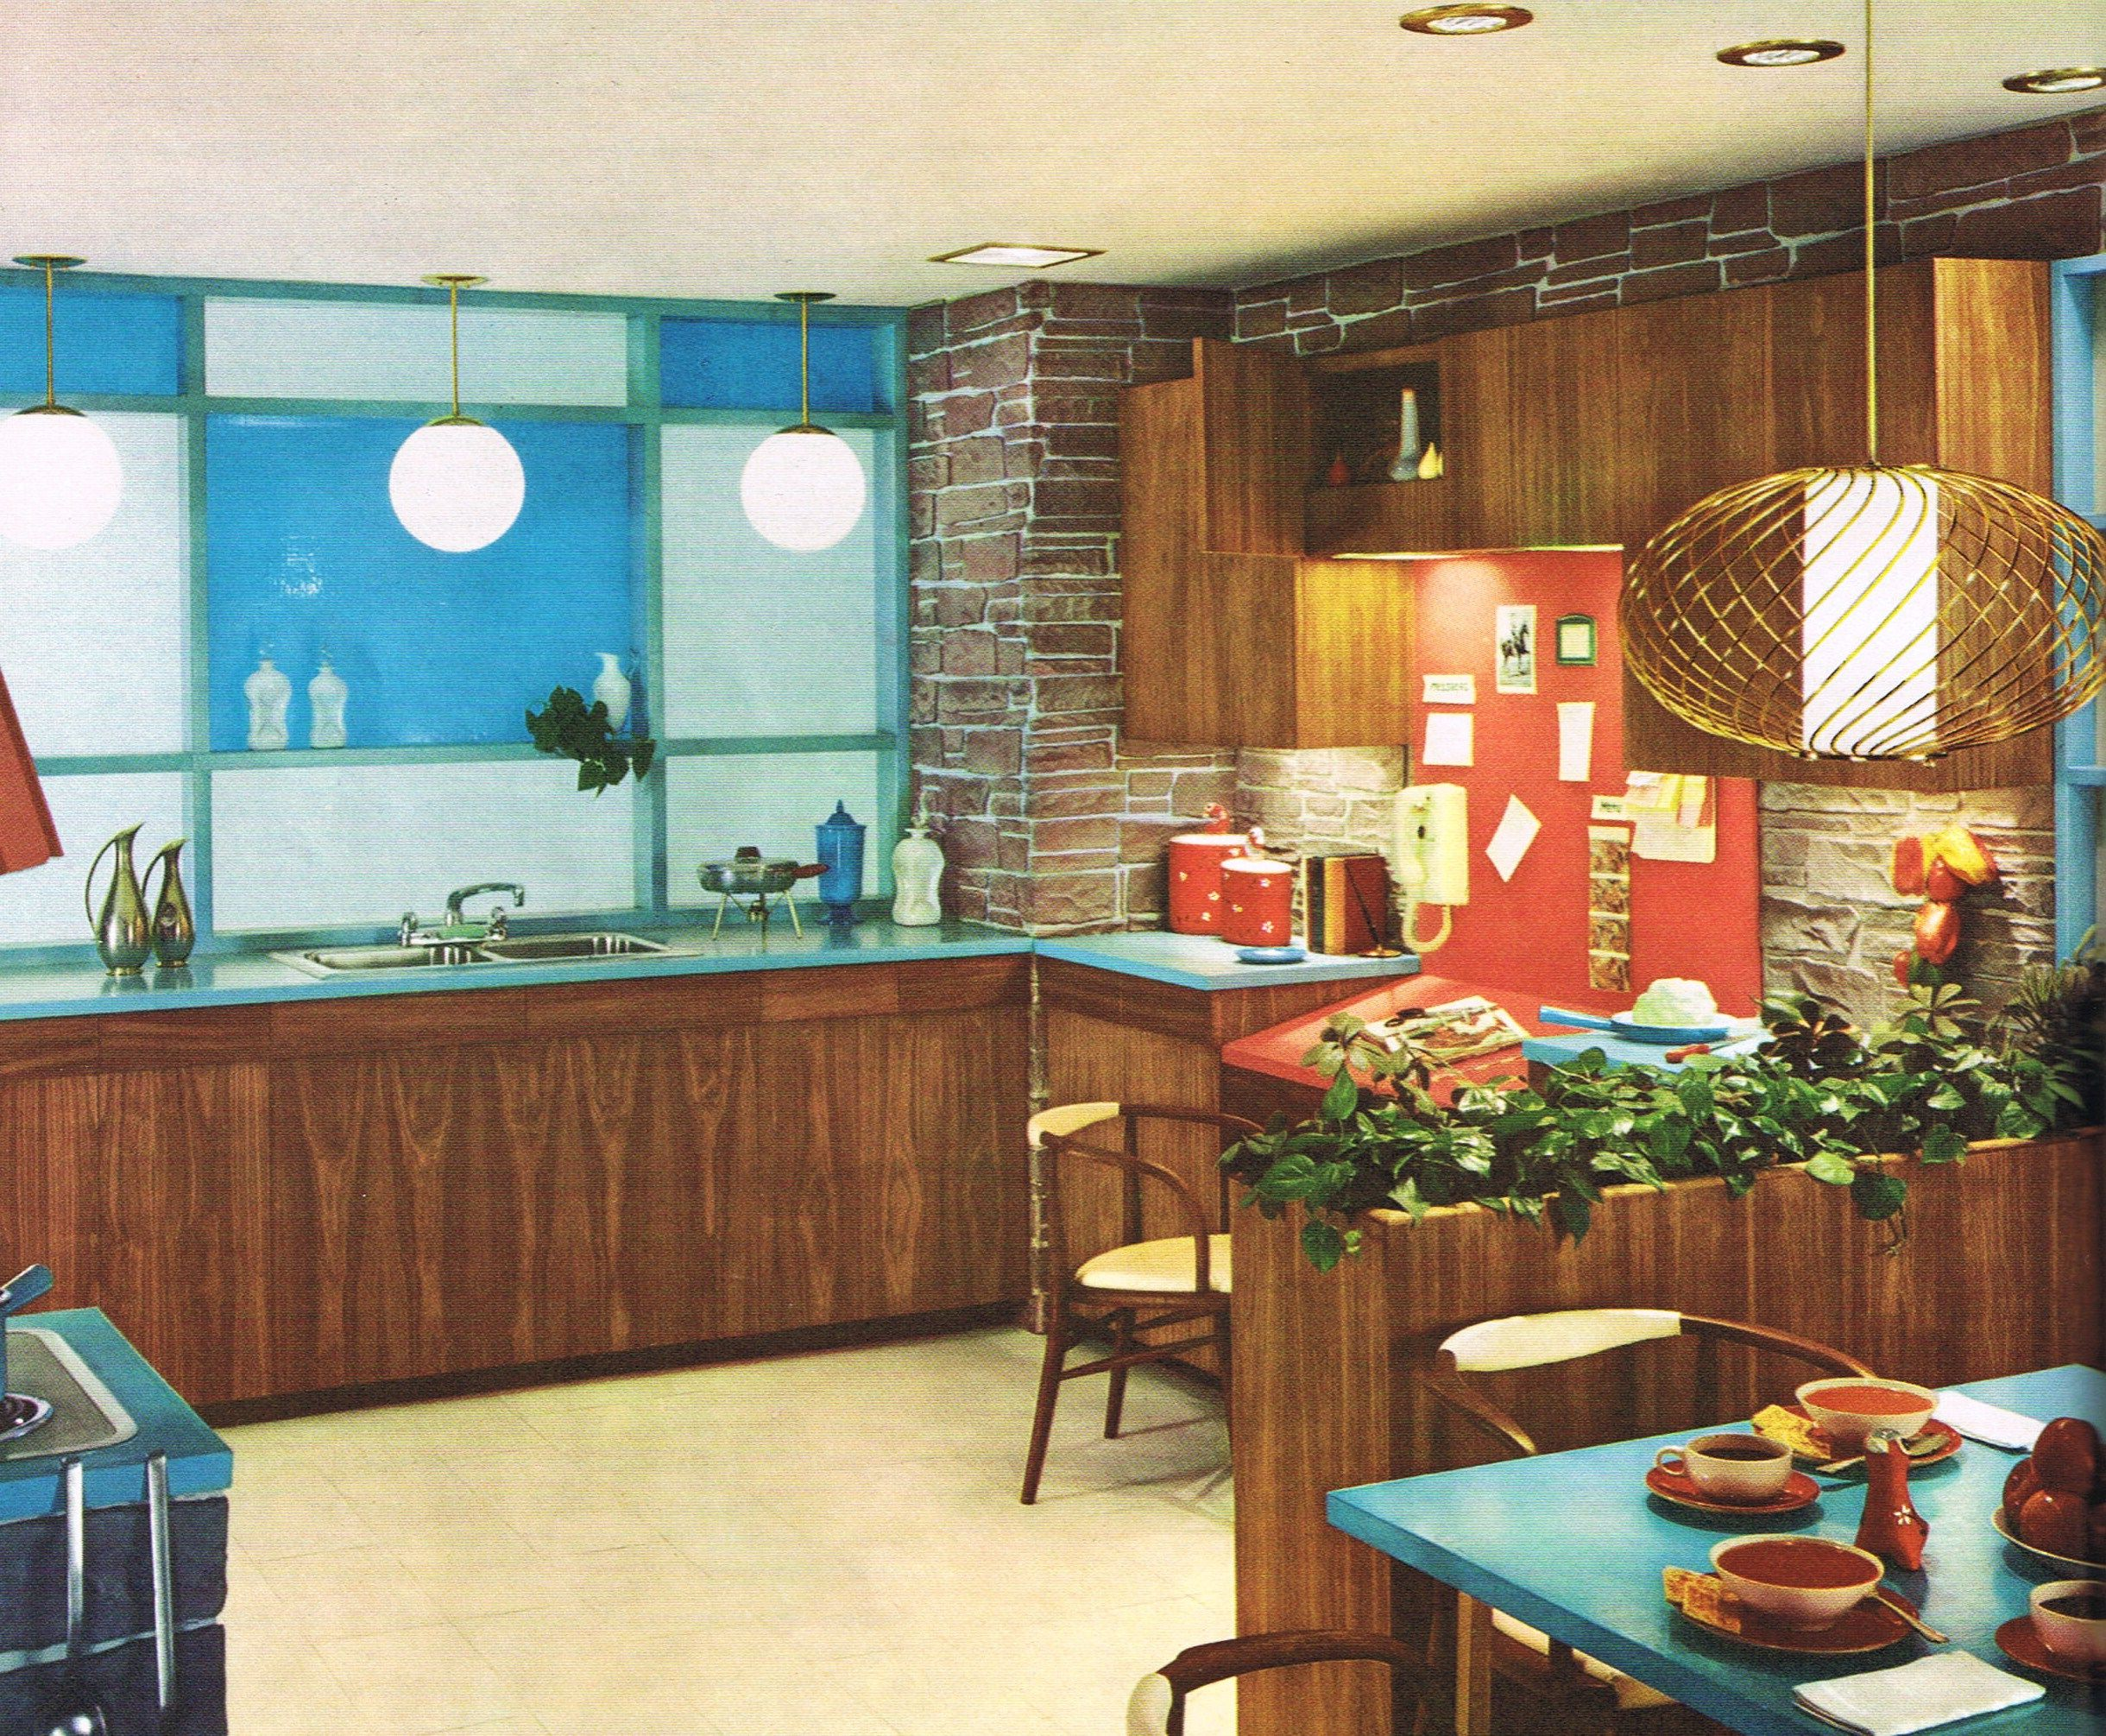 Best Mid Mod Kitchen Design Mid Century Modern Kitchen Mid 400 x 300